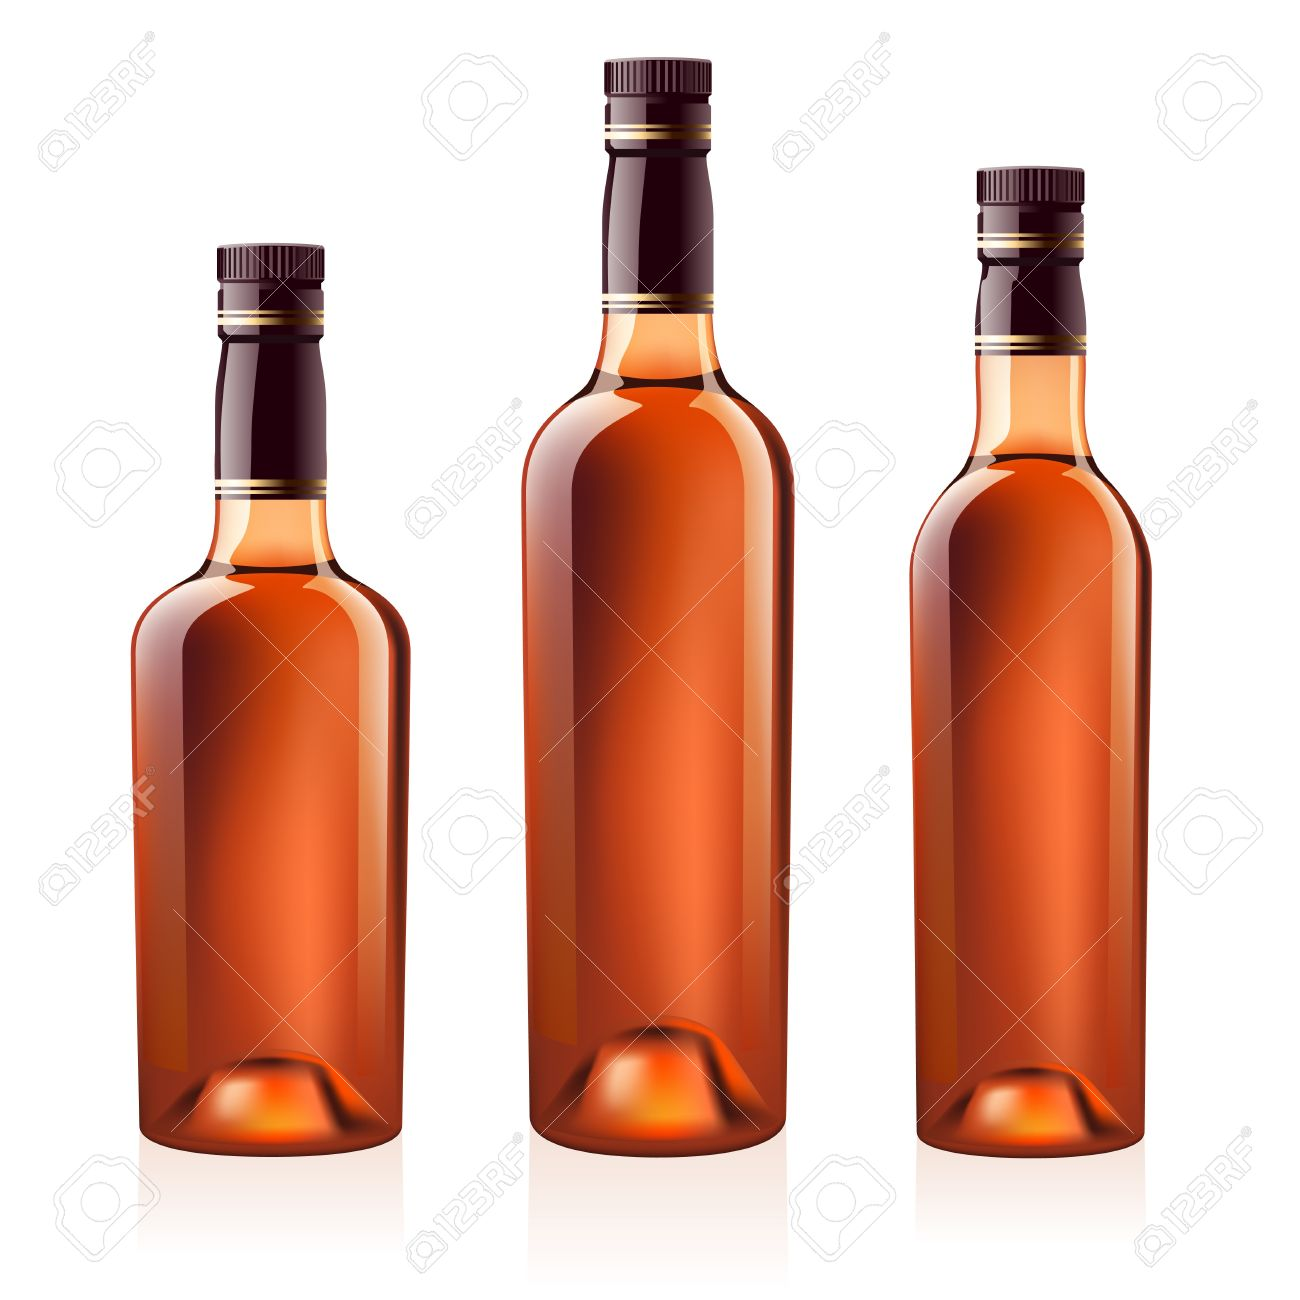 Realistic  bottles of cognac (brandy). Isolated on white background Stock Vector - 7570828